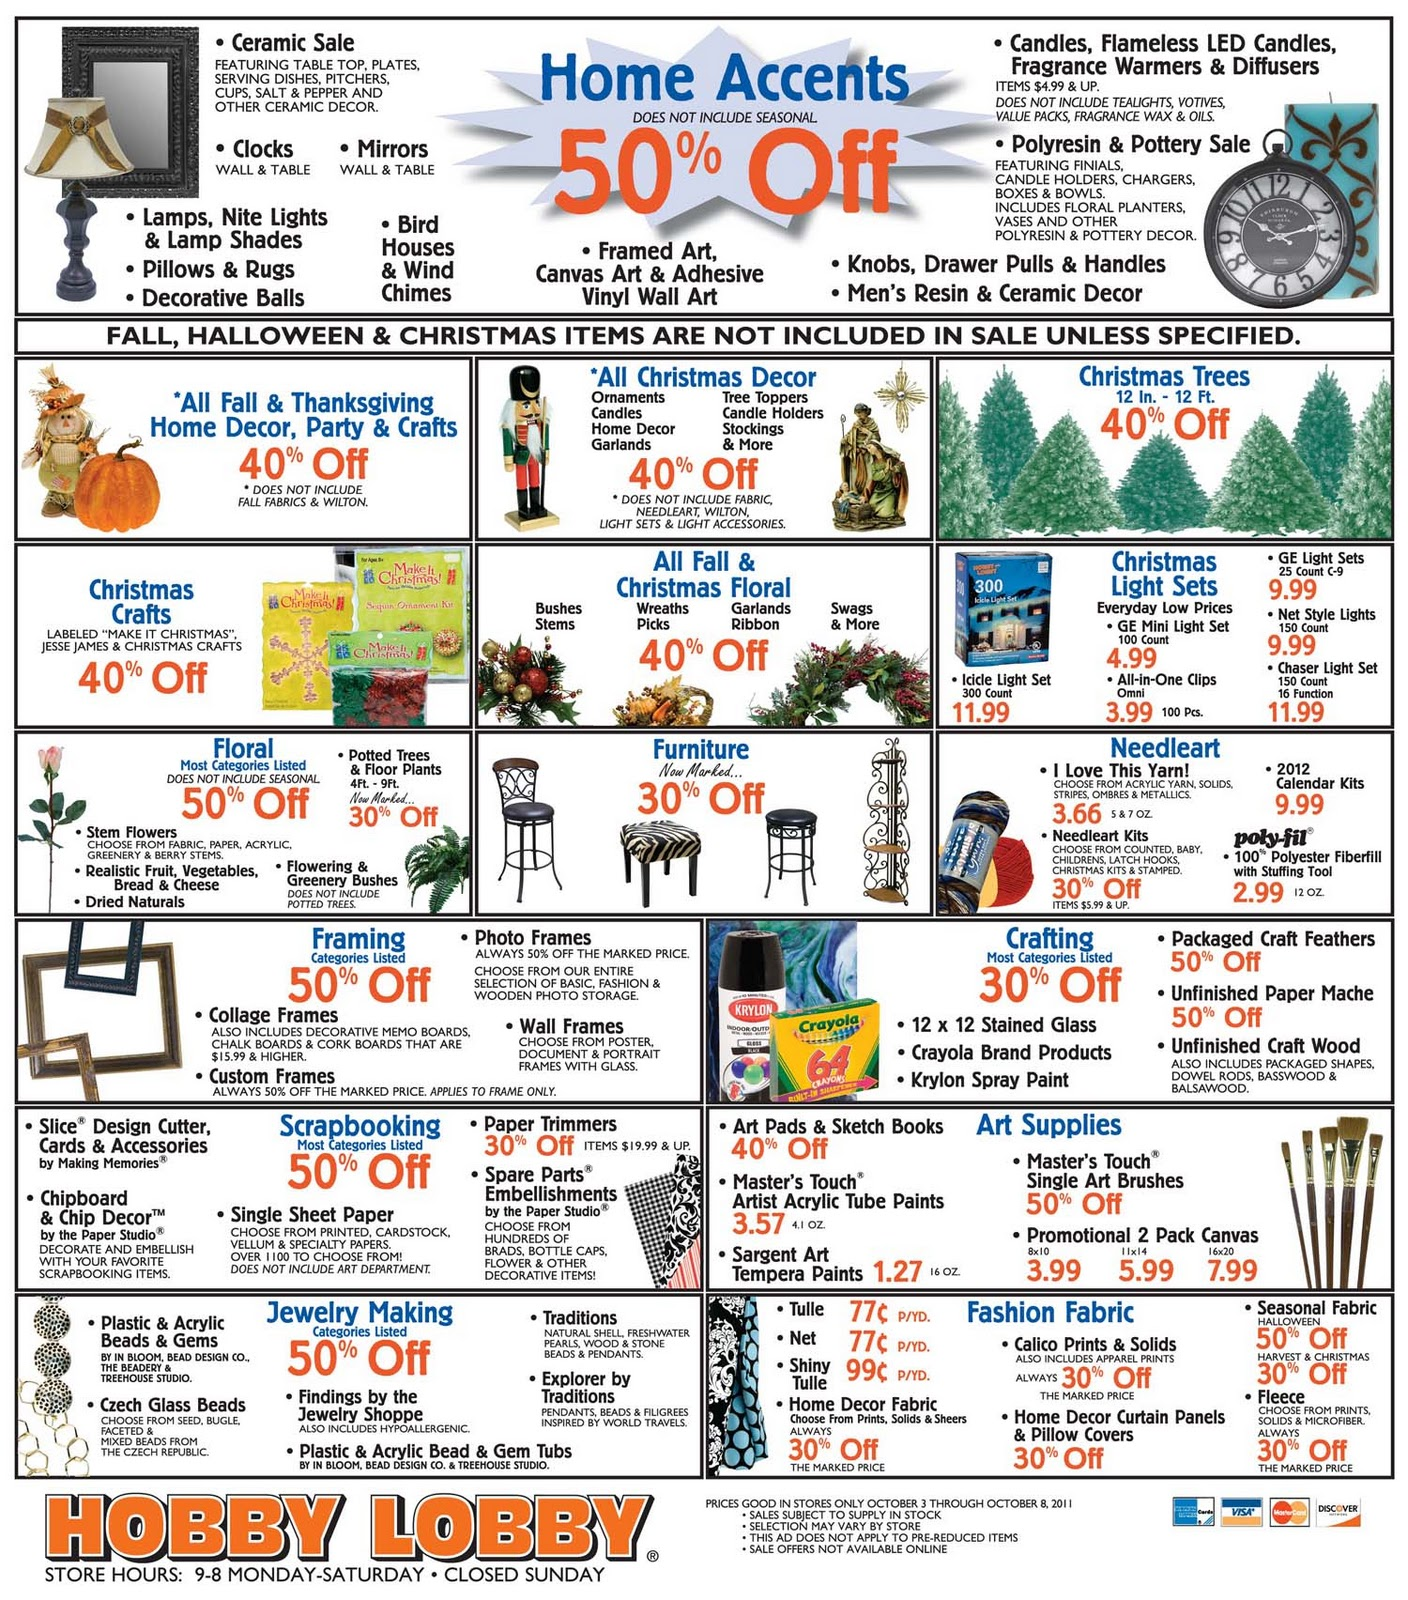 Hobby lobby coupon code entire purchase 2017 2018 best cars